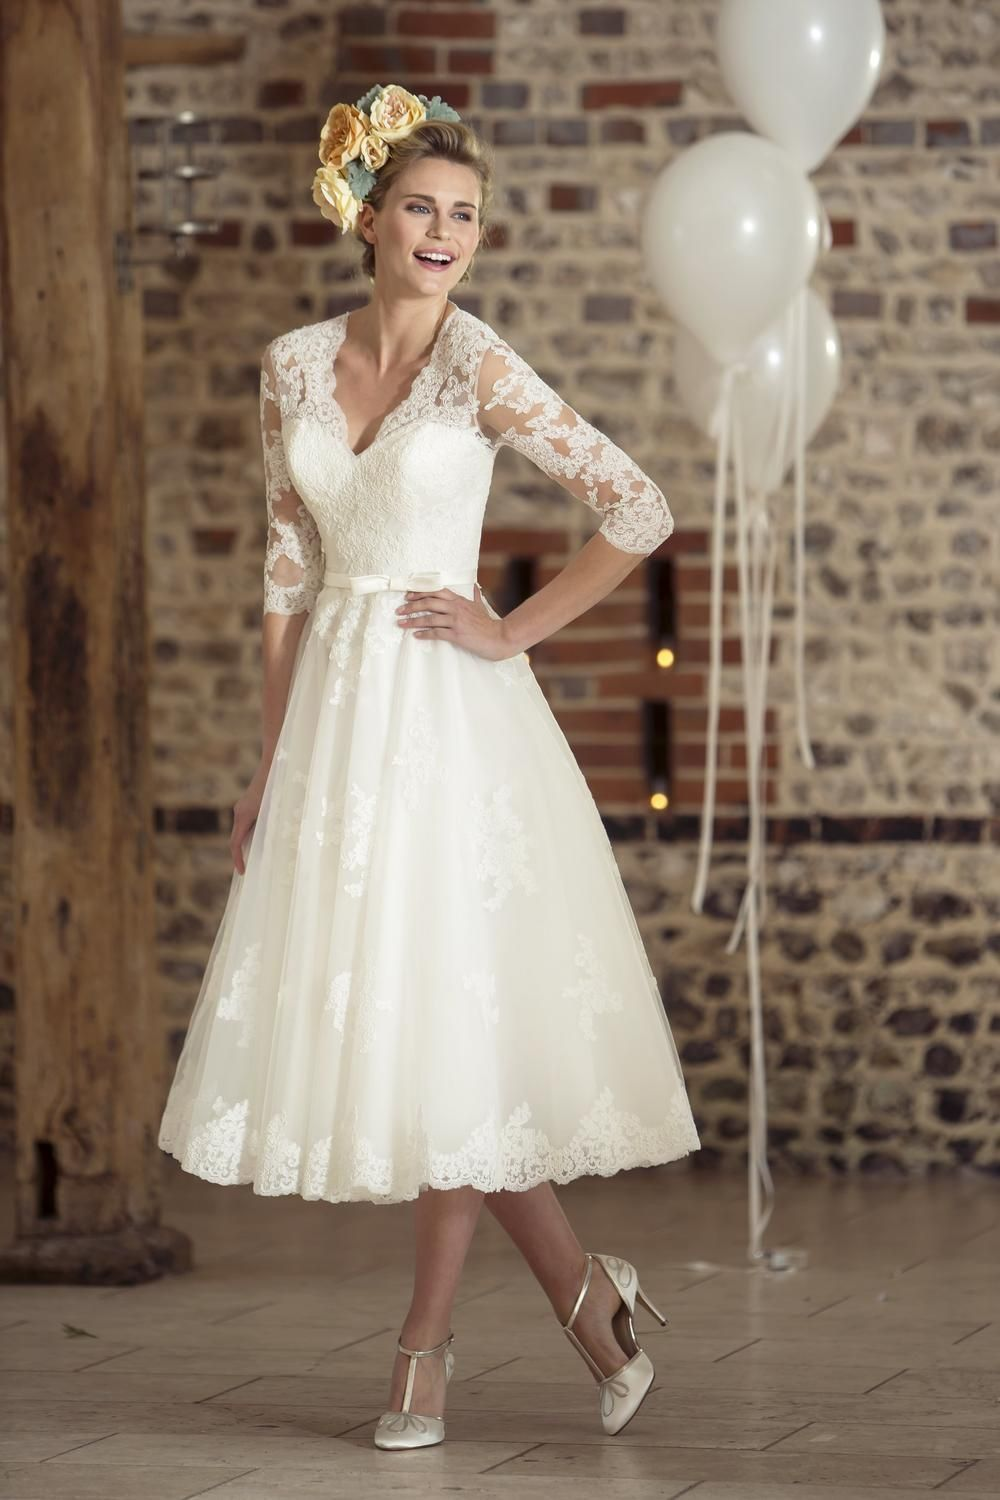 50s style wedding dress with sleeves fashion pinterest 50s style wedding dress with sleeves ombrellifo Images